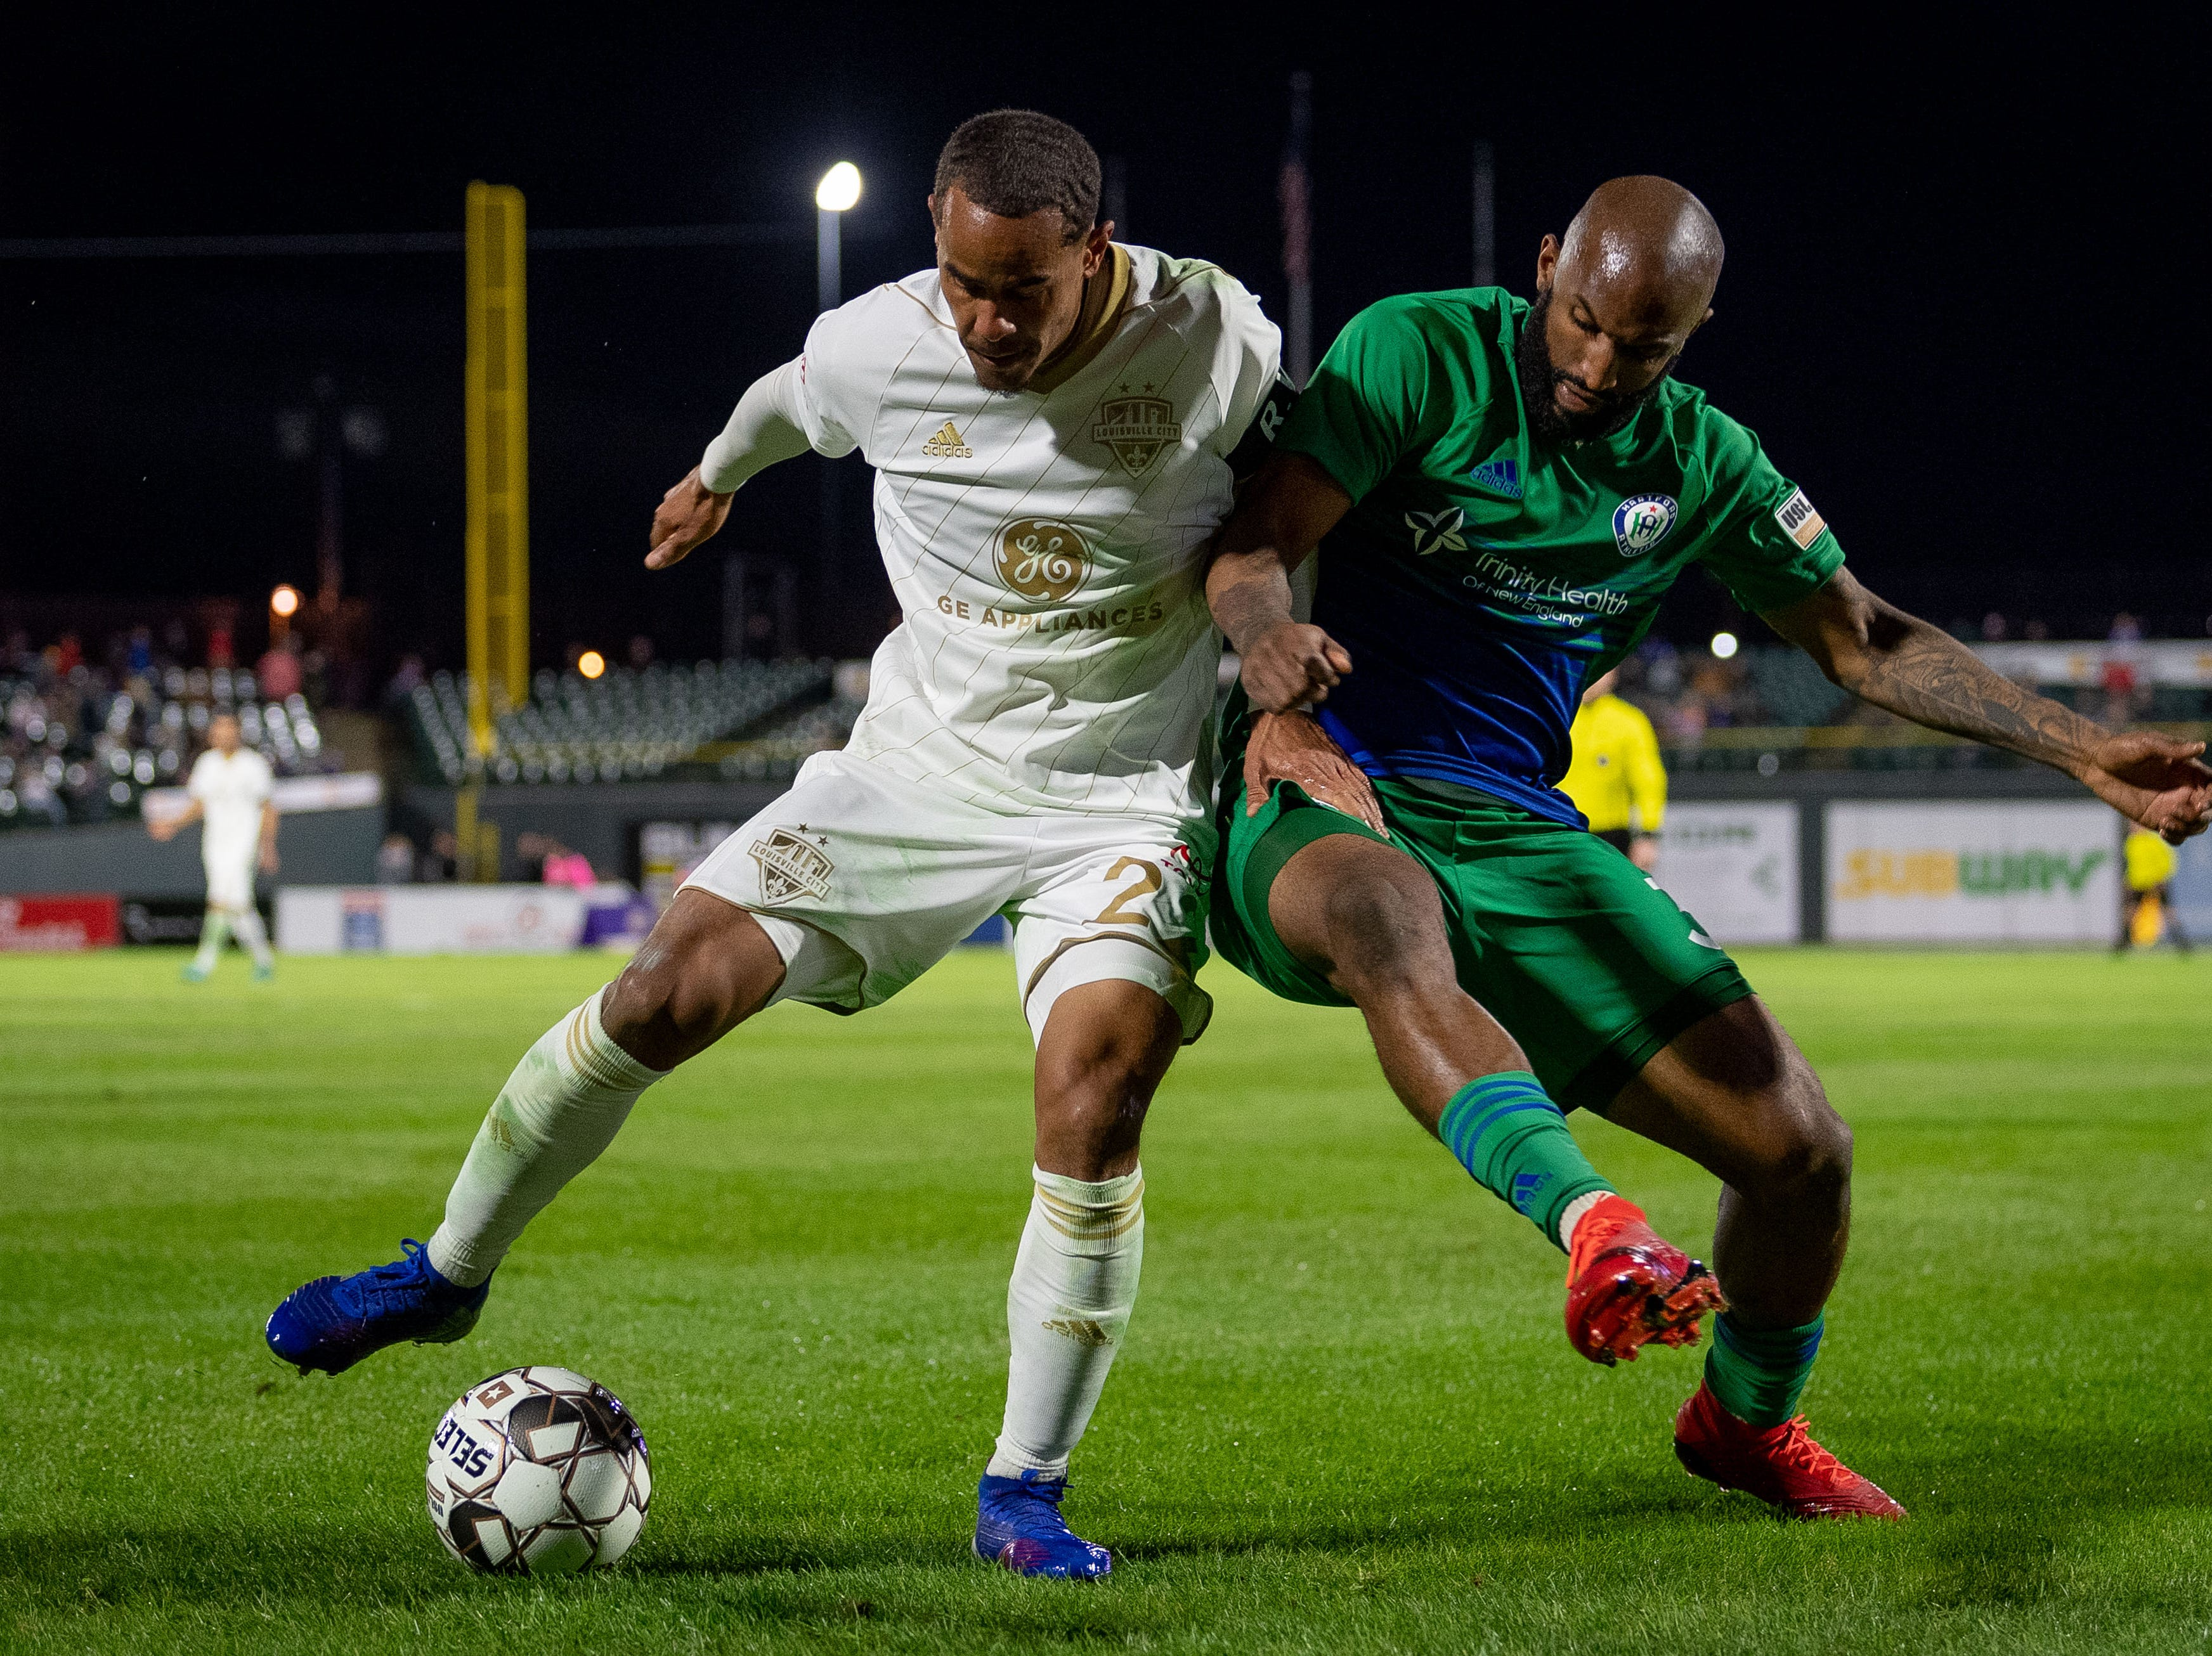 Louisville City FC midfielder George Davis IV (22) plays against Raymond Lee (3) during the season opening match in Louisville, Ky., Saturday, March 23, 2019.